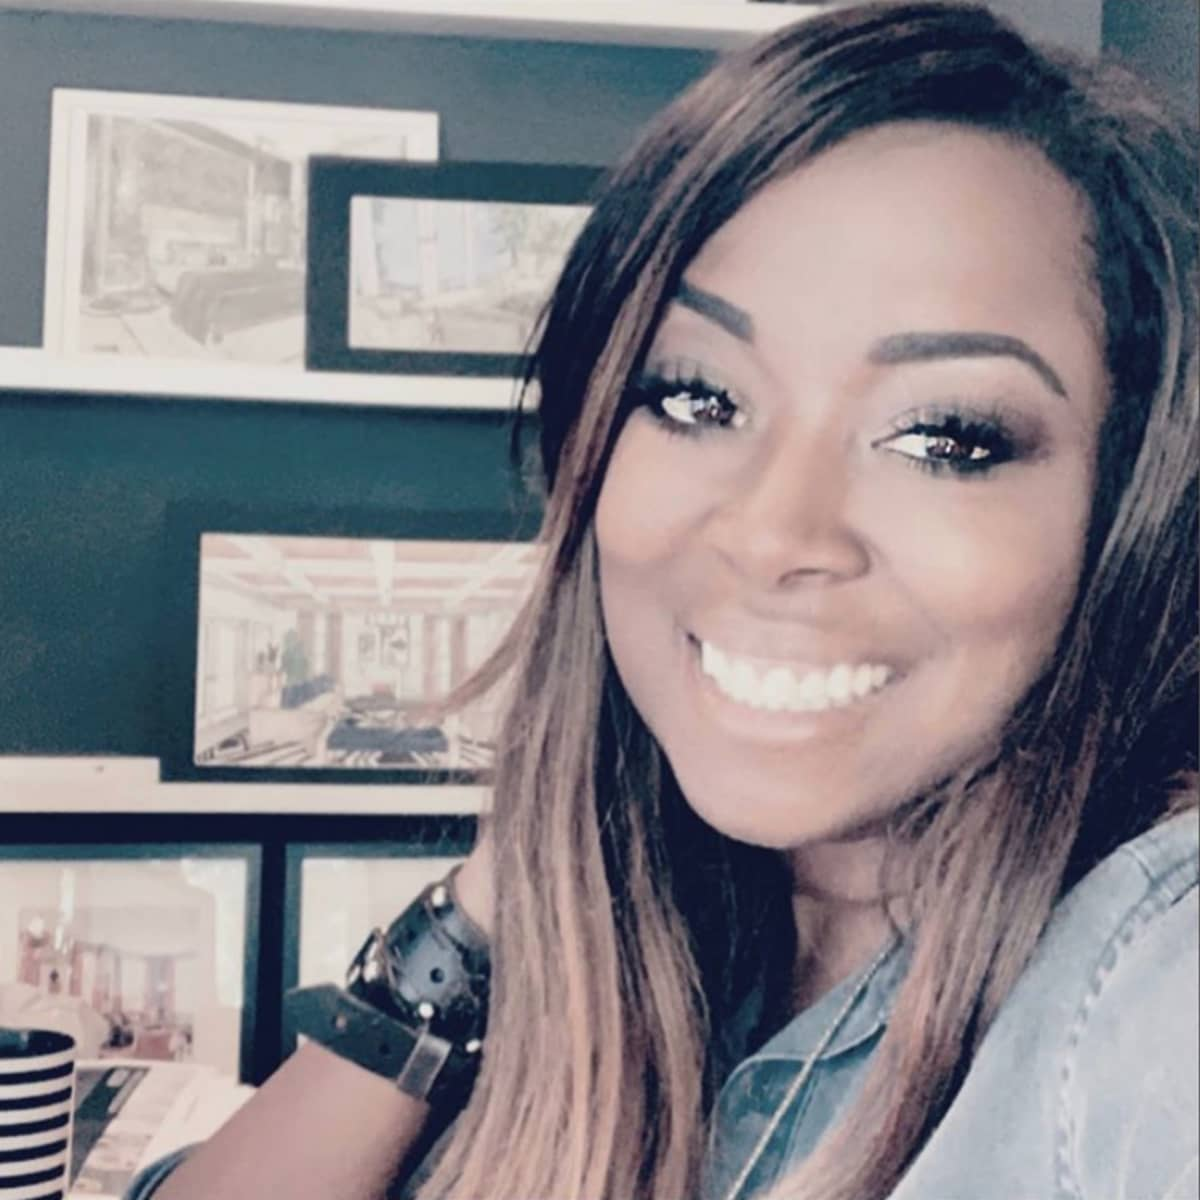 HGTV 'Design Star' Winner Tiffany Brooks Today